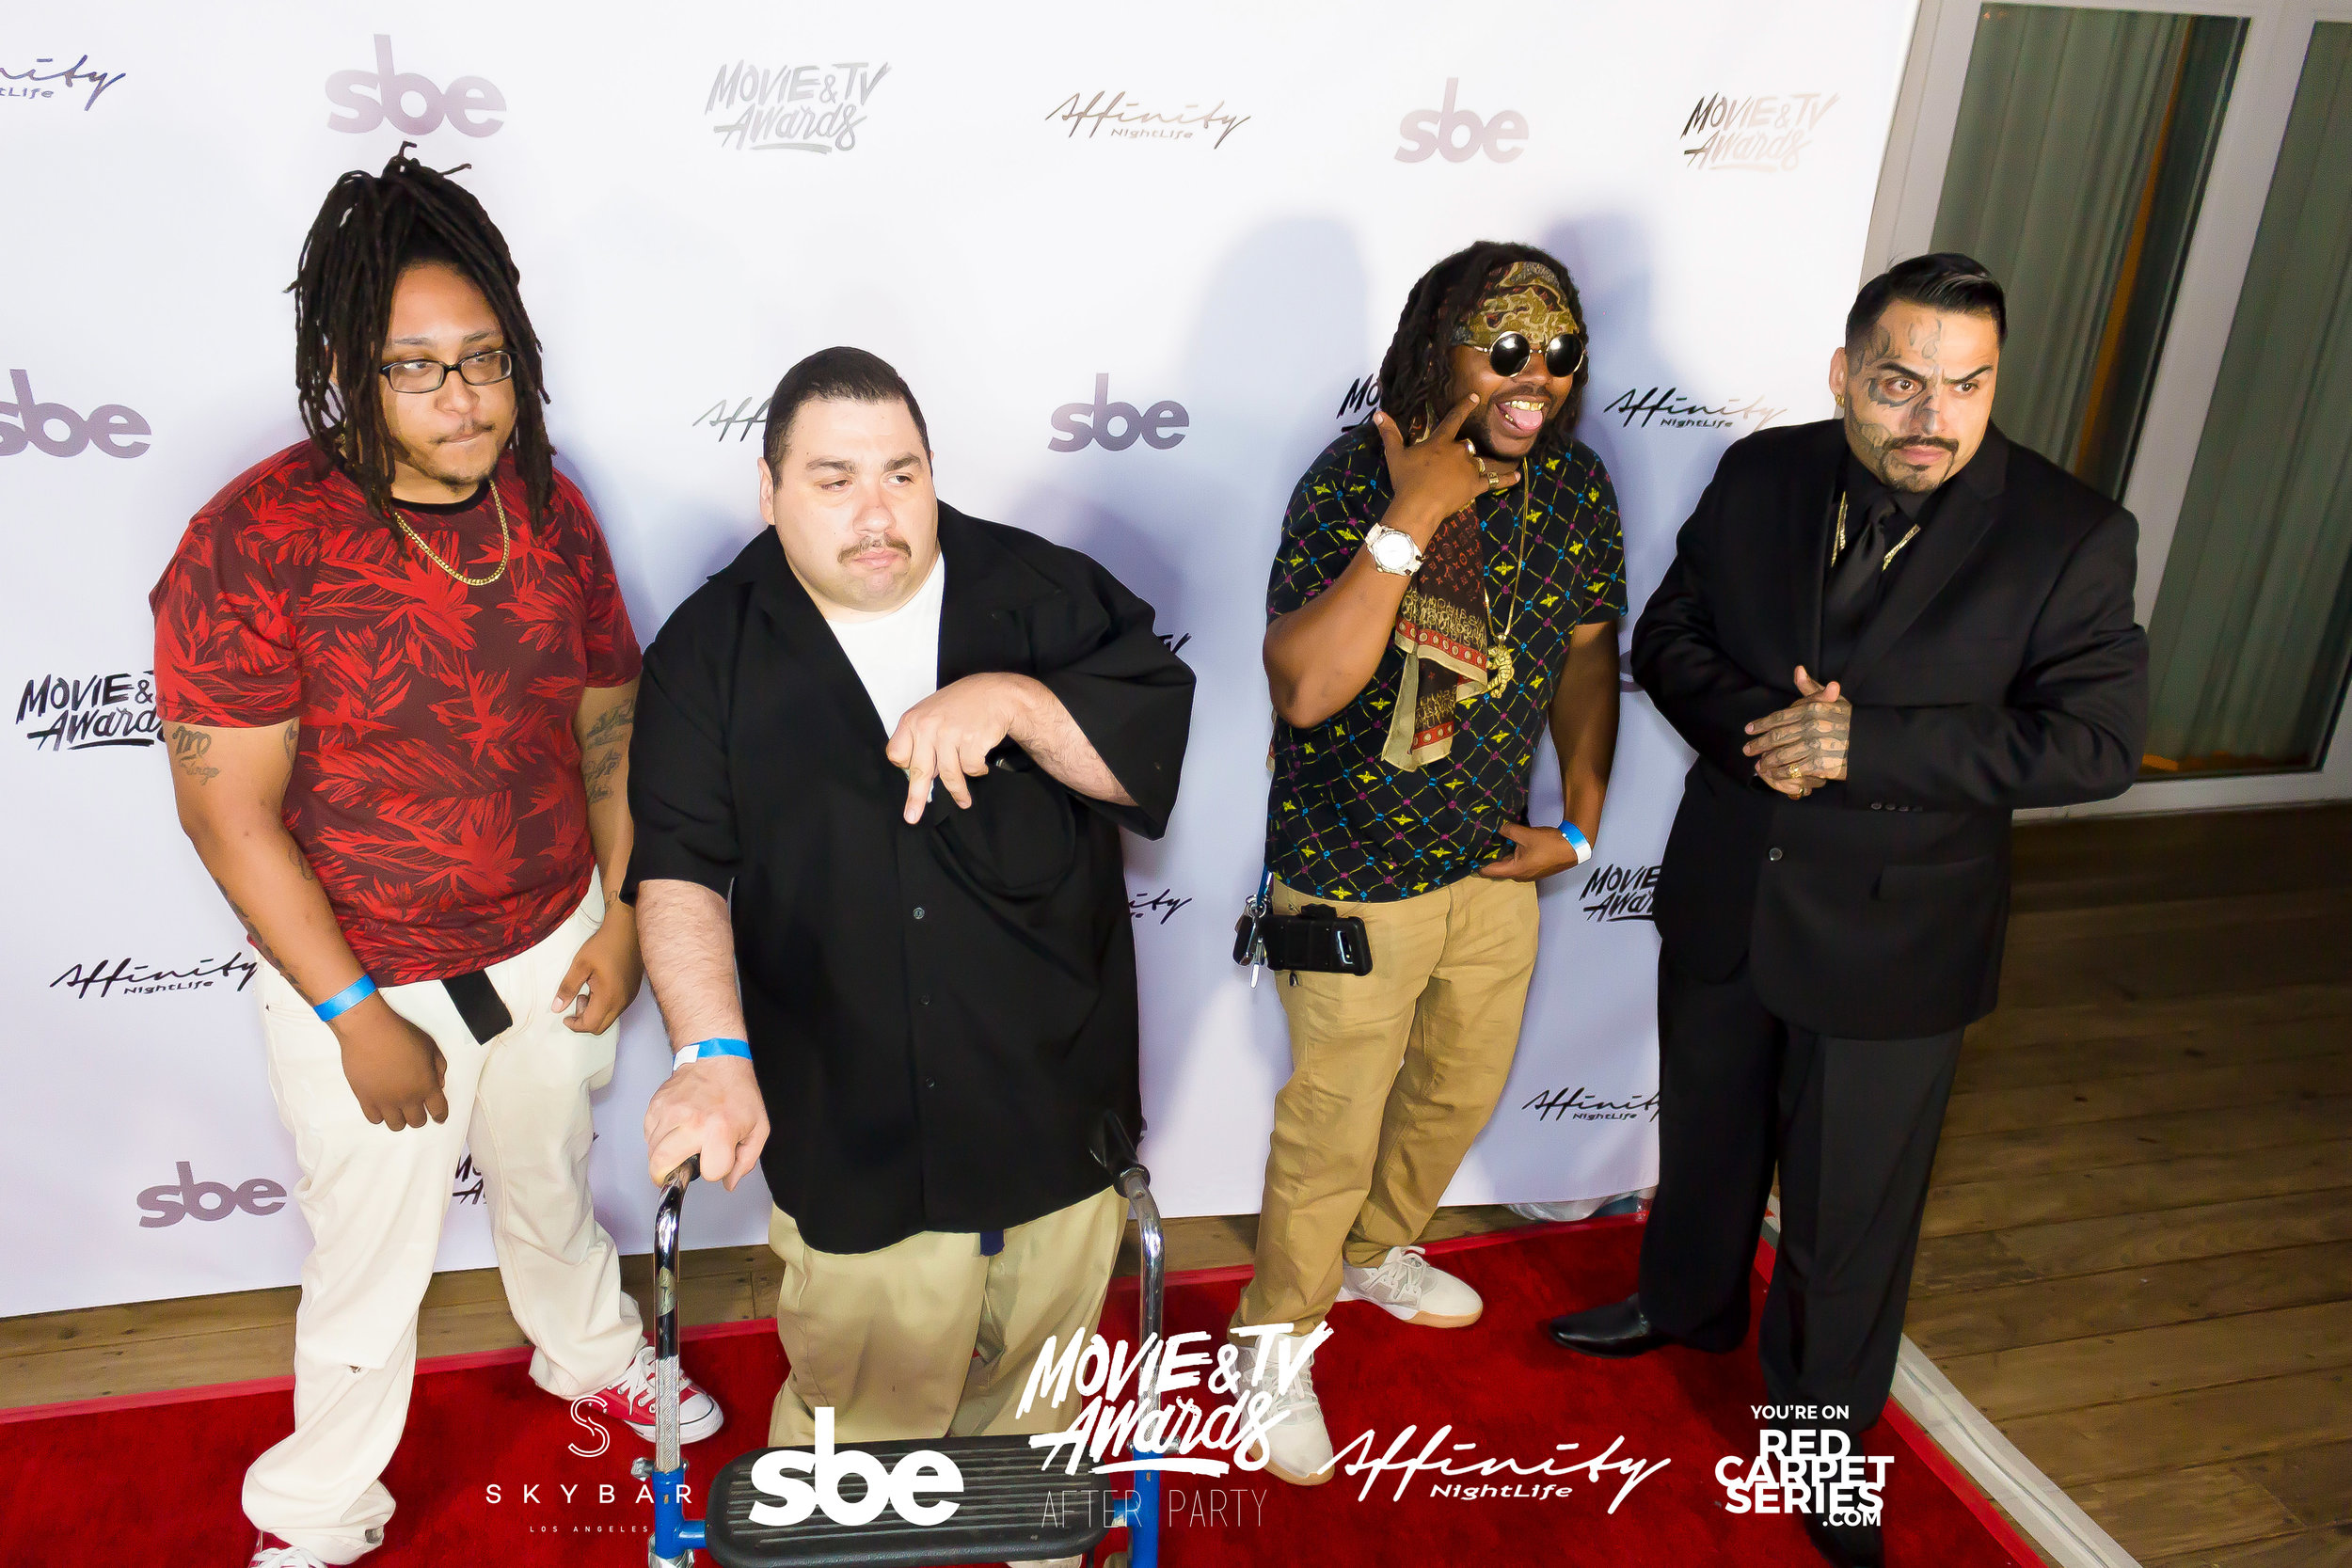 Affinity Nightlife MTV Movie & TV Awards After Party - Skybar at Mondrian - 06-15-19 - Vol. 2_115.jpg